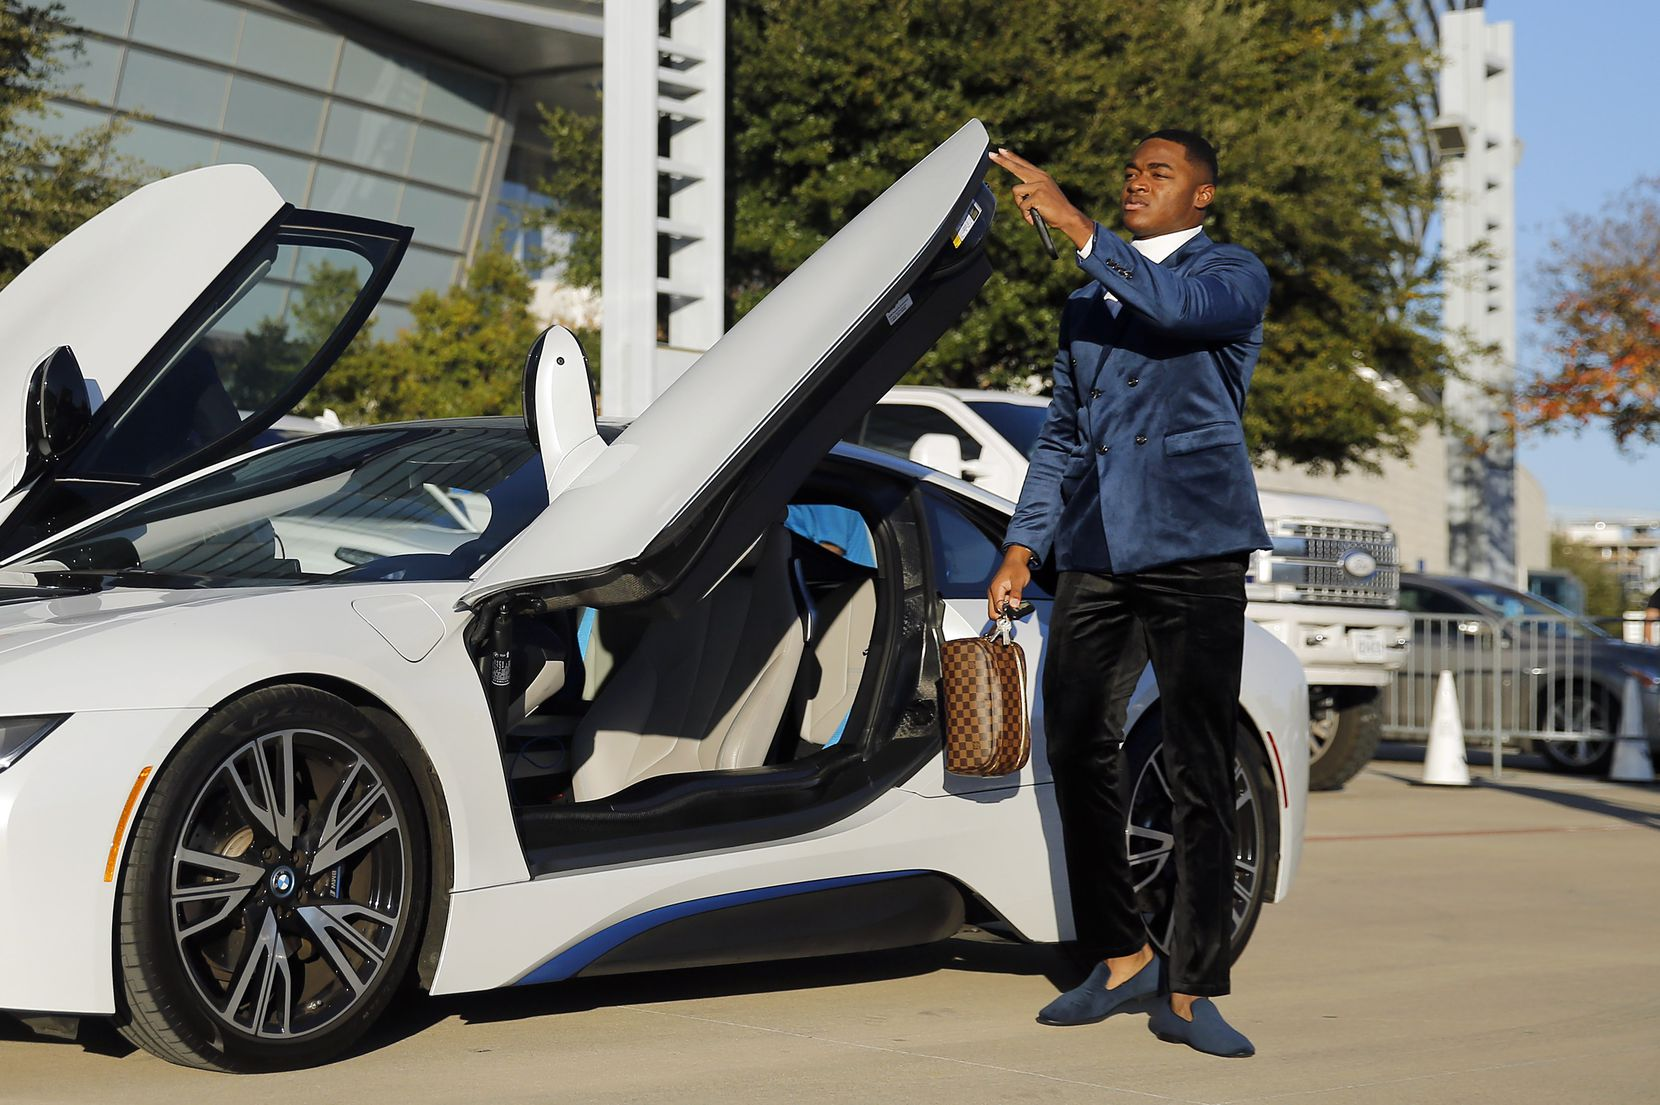 Dallas Cowboys wide receiver Amari Cooper closes the door on his BMW i8 as he arrives to AT&T Stadium in Arlington, Texas for their game against the New Orleans Saints, Thursday, November 29, 2018. (Tom Fox/The Dallas Morning News)